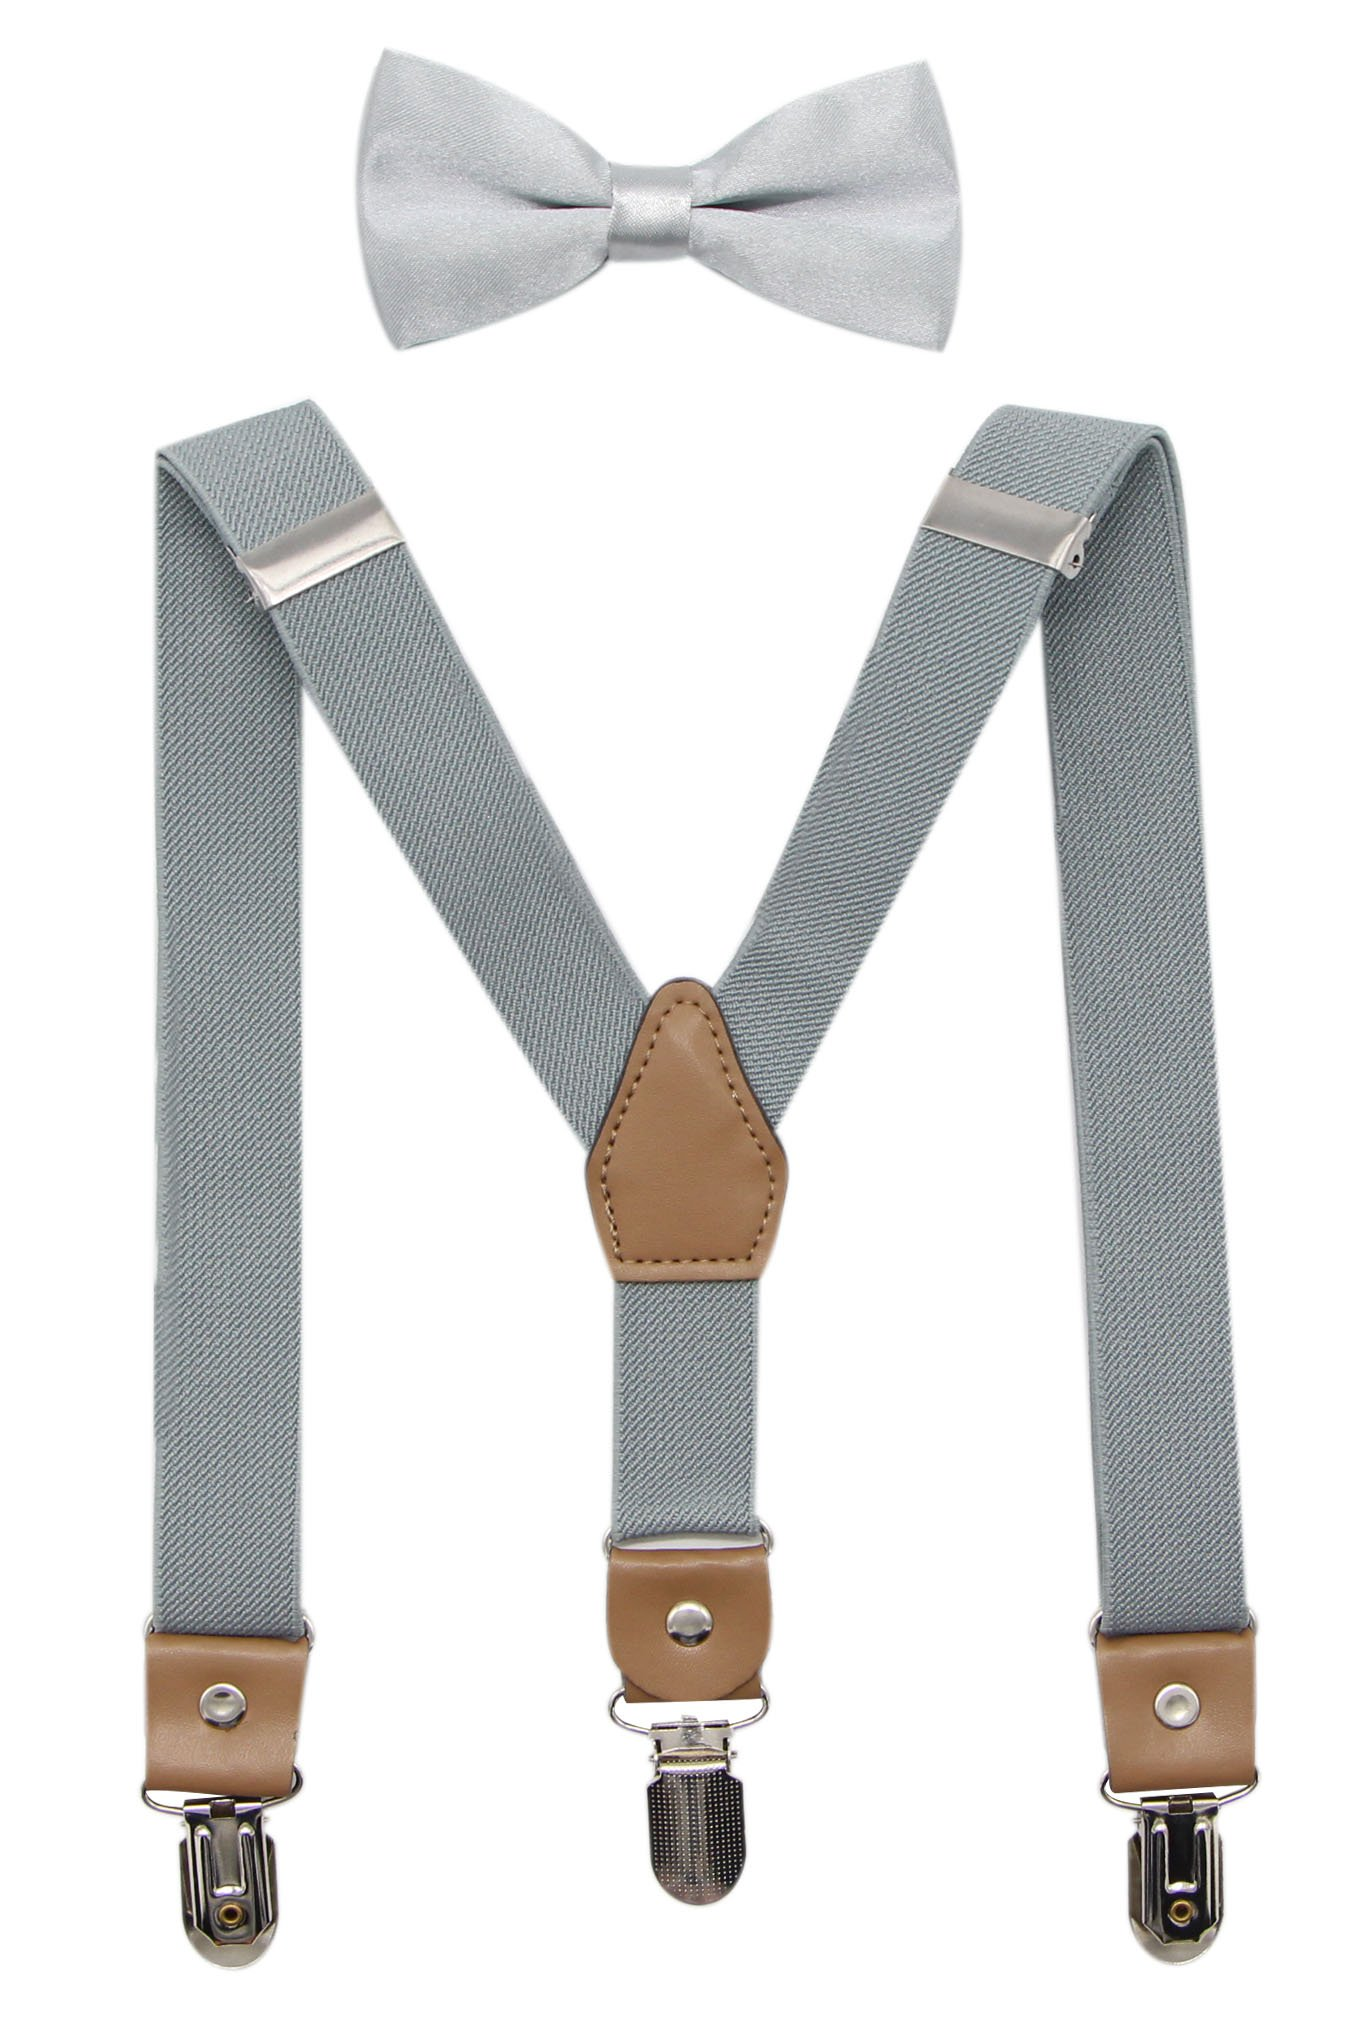 Bioterti Suspenders and Bow Tie For Toddler Kids Boys Adjustable With Strong Clips (Light Grey)